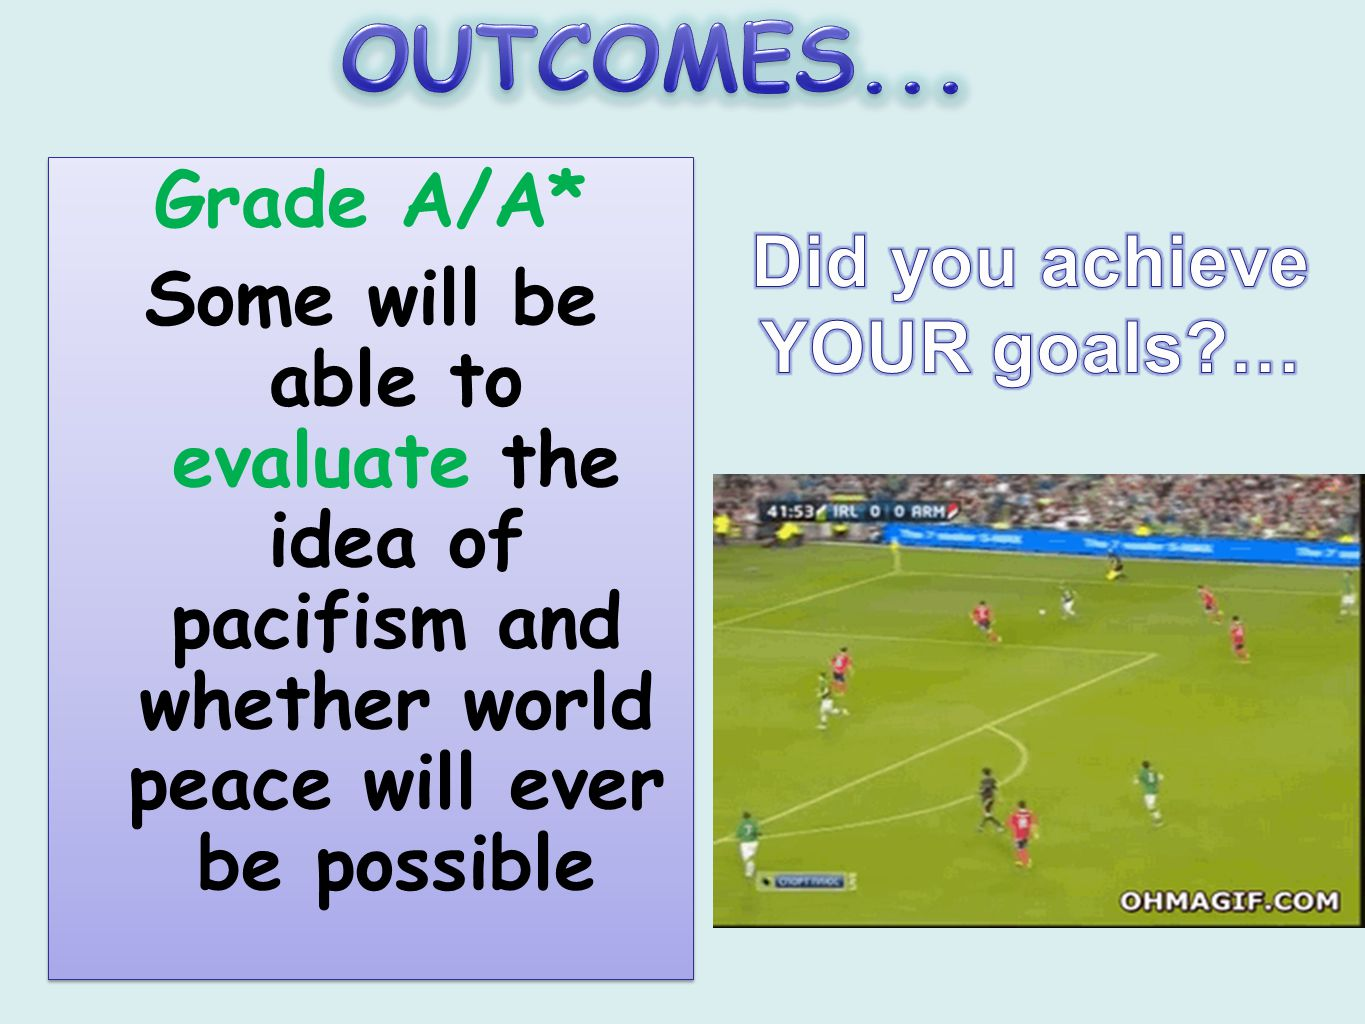 Grade A/A* Some will be able to evaluate the idea of pacifism and whether world peace will ever be possible Grade A/A* Some will be able to evaluate the idea of pacifism and whether world peace will ever be possible